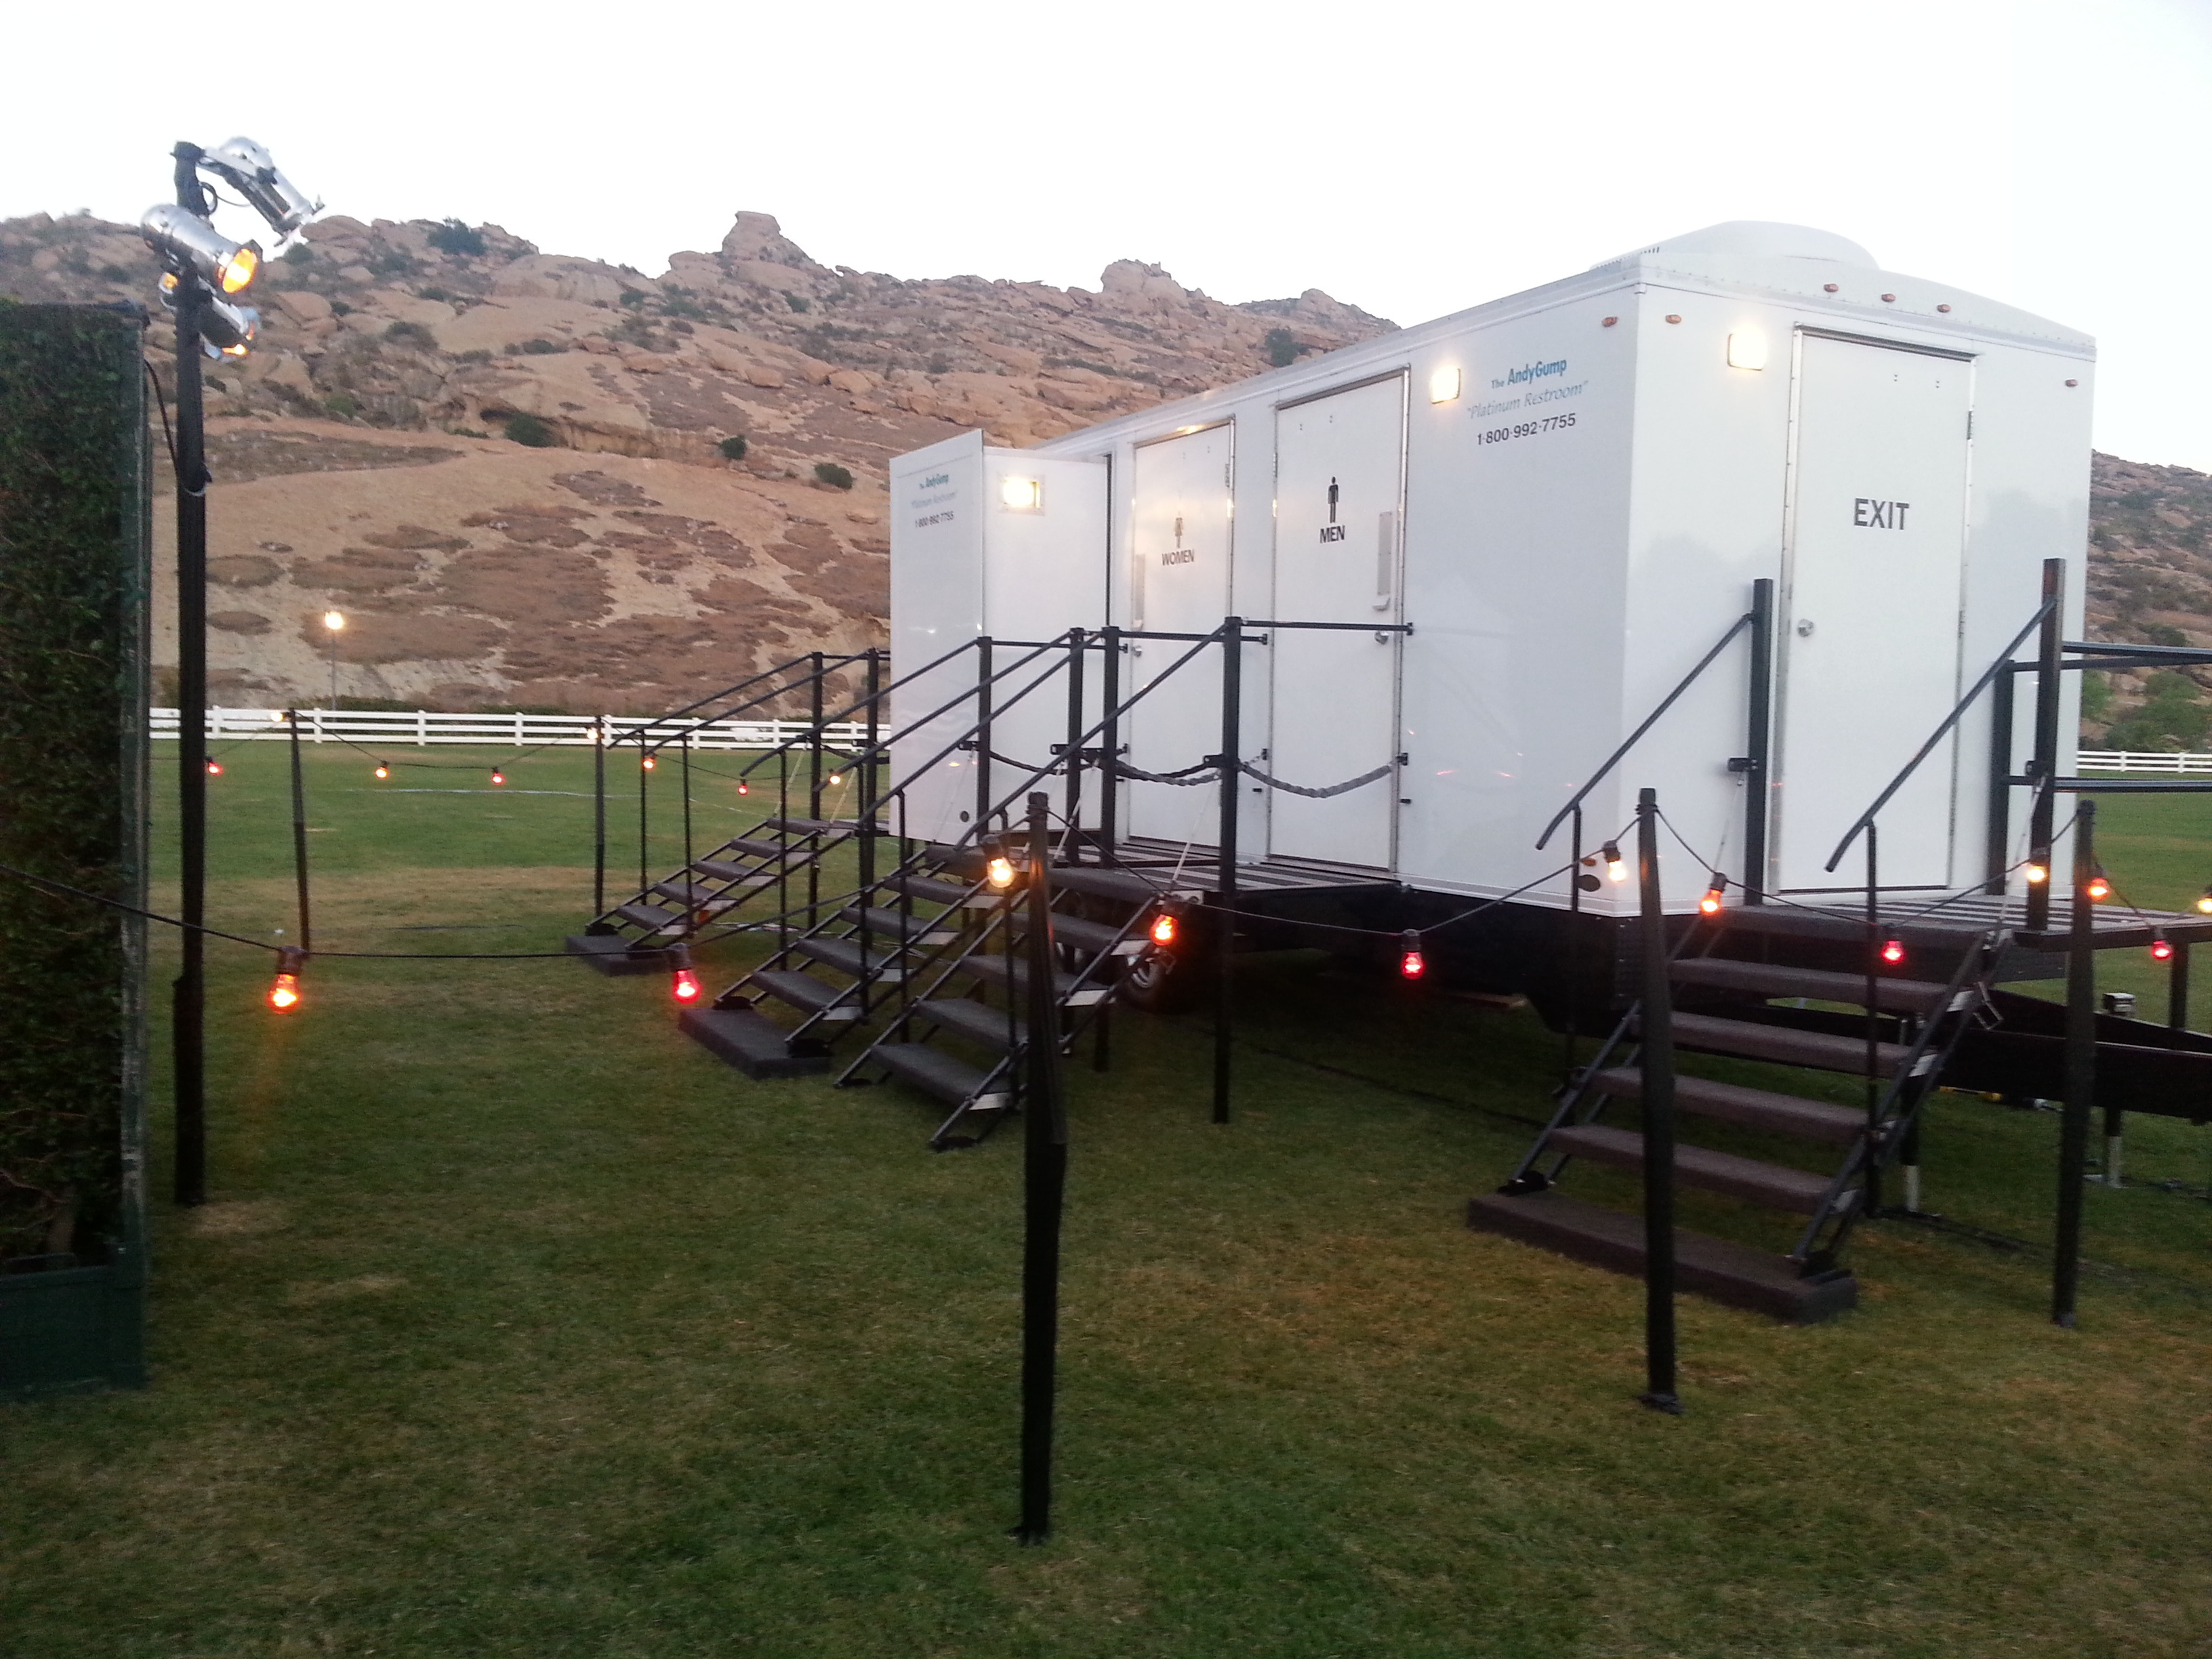 Special Event Suite Restroom Trailer